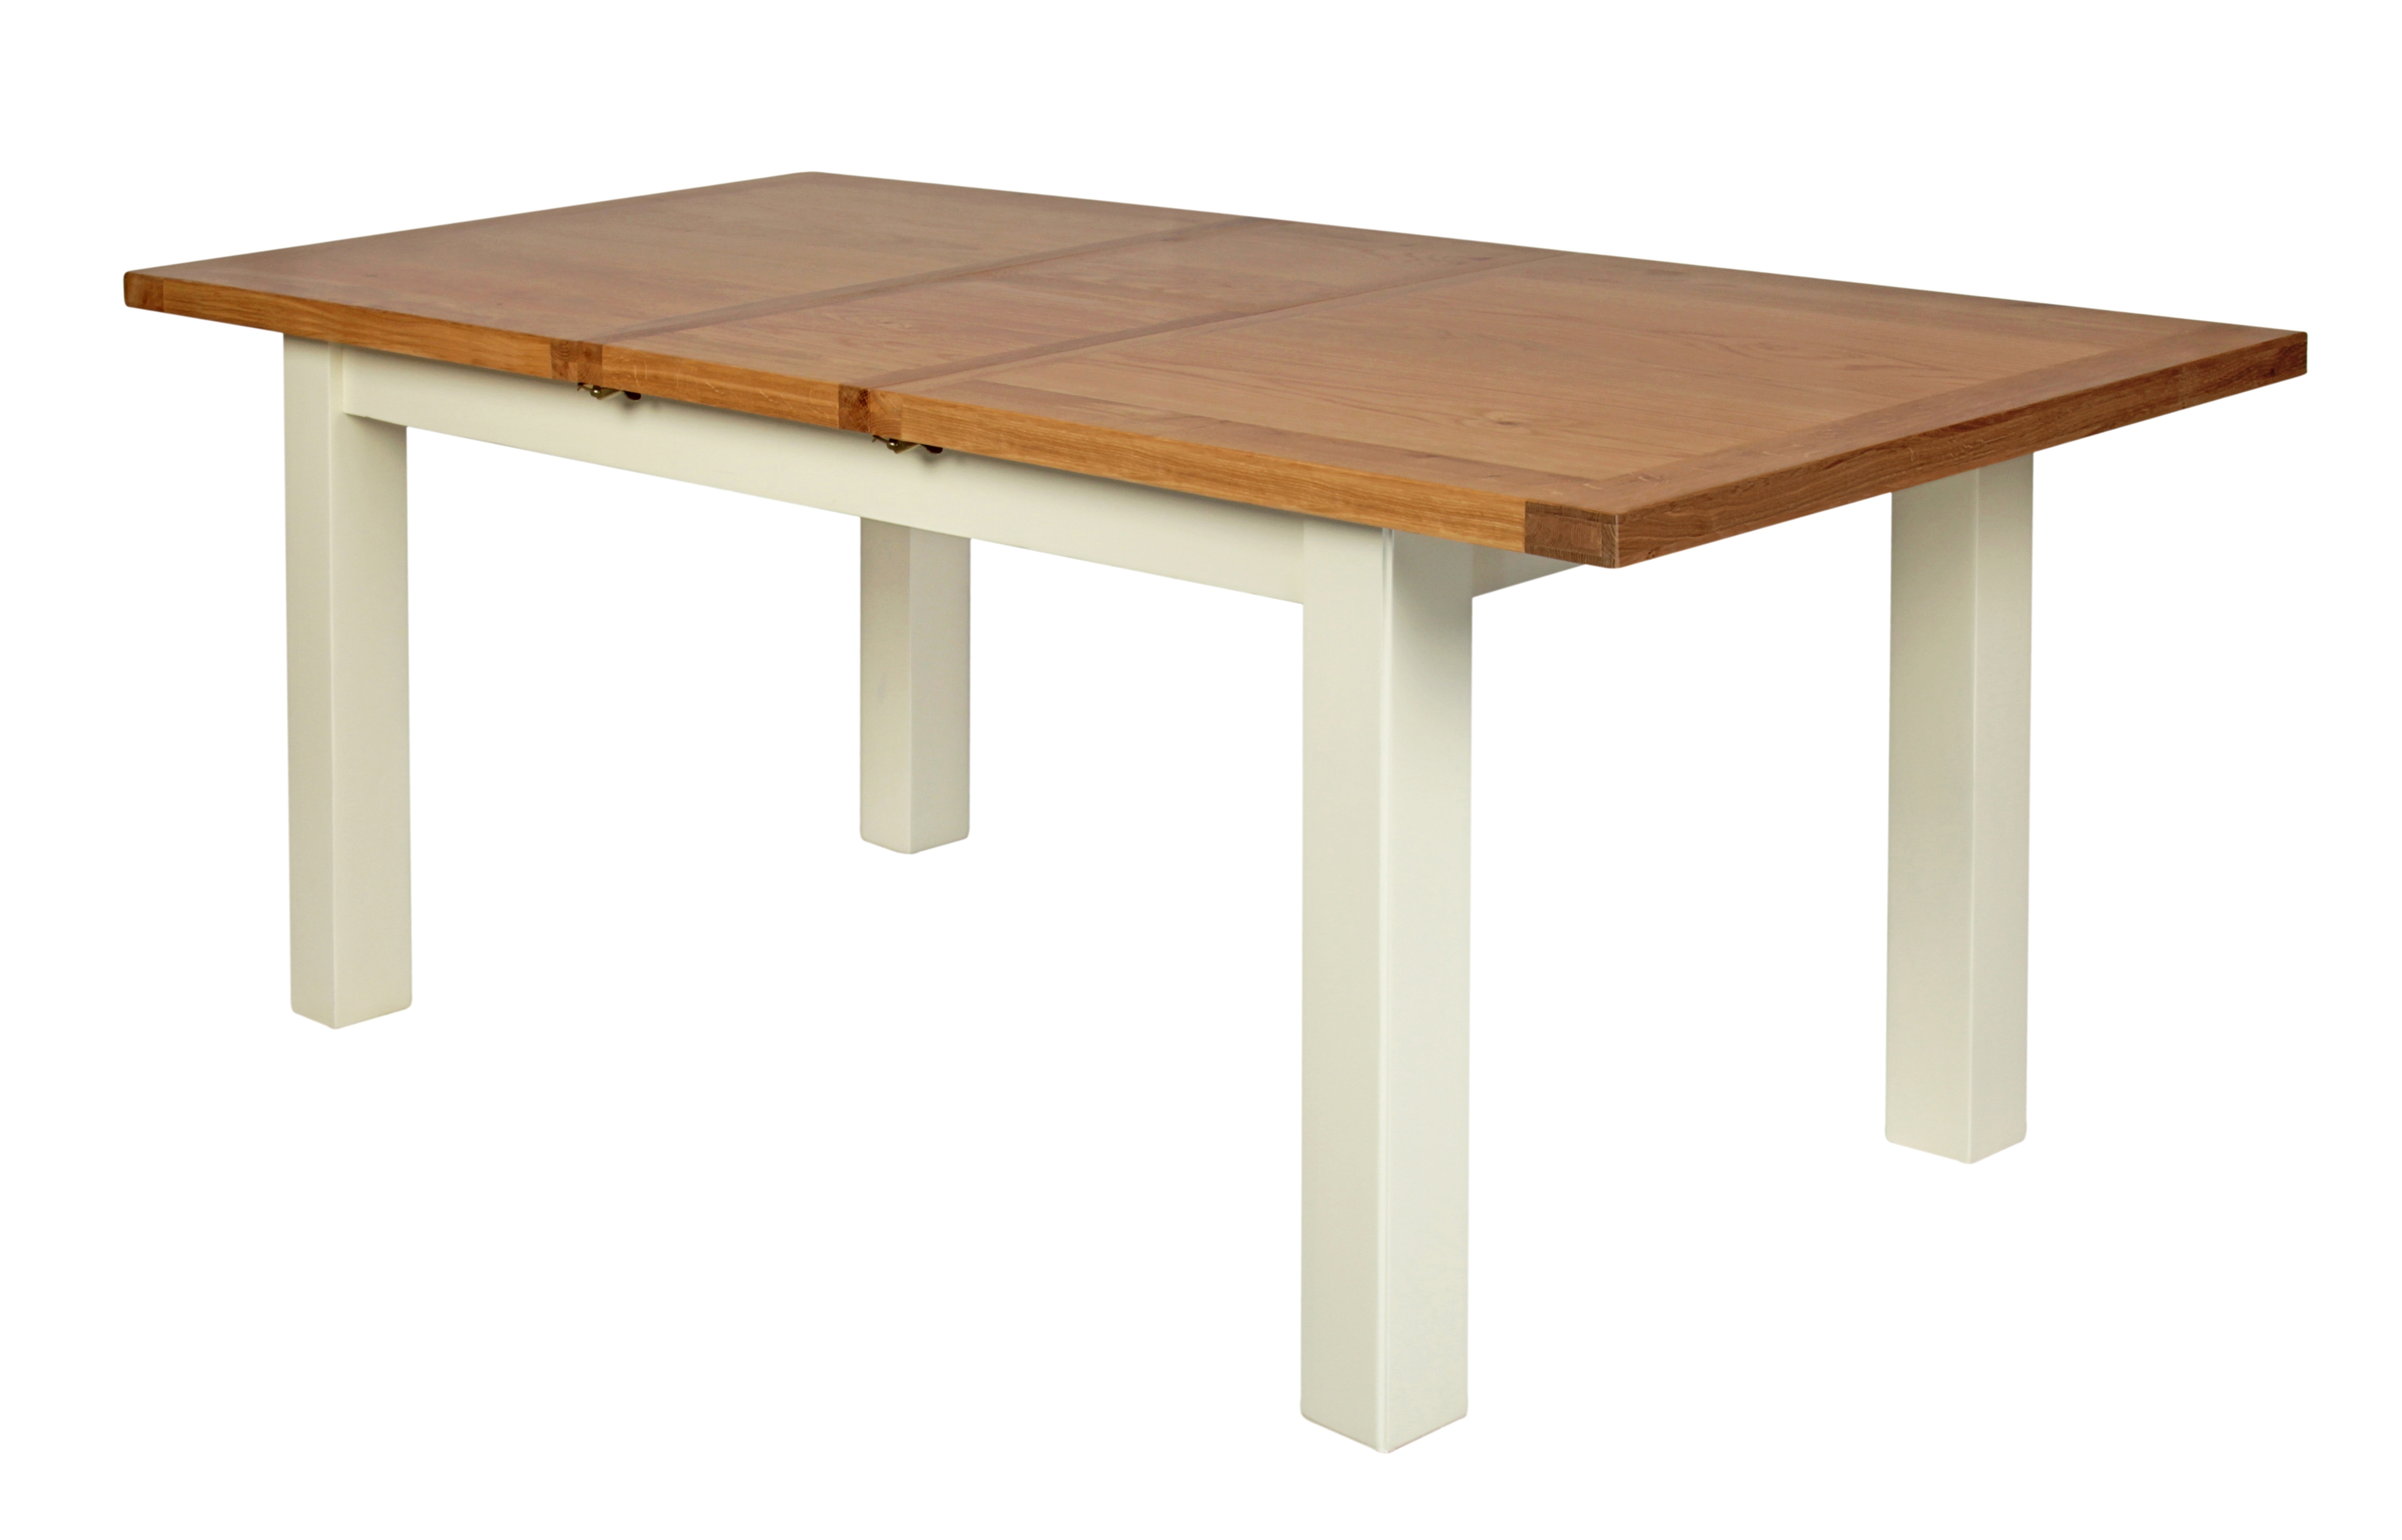 Most Recent Ivory Painted Oak Large Extending Dining Table With Butterfly For Ivory Painted Dining Tables (View 15 of 25)